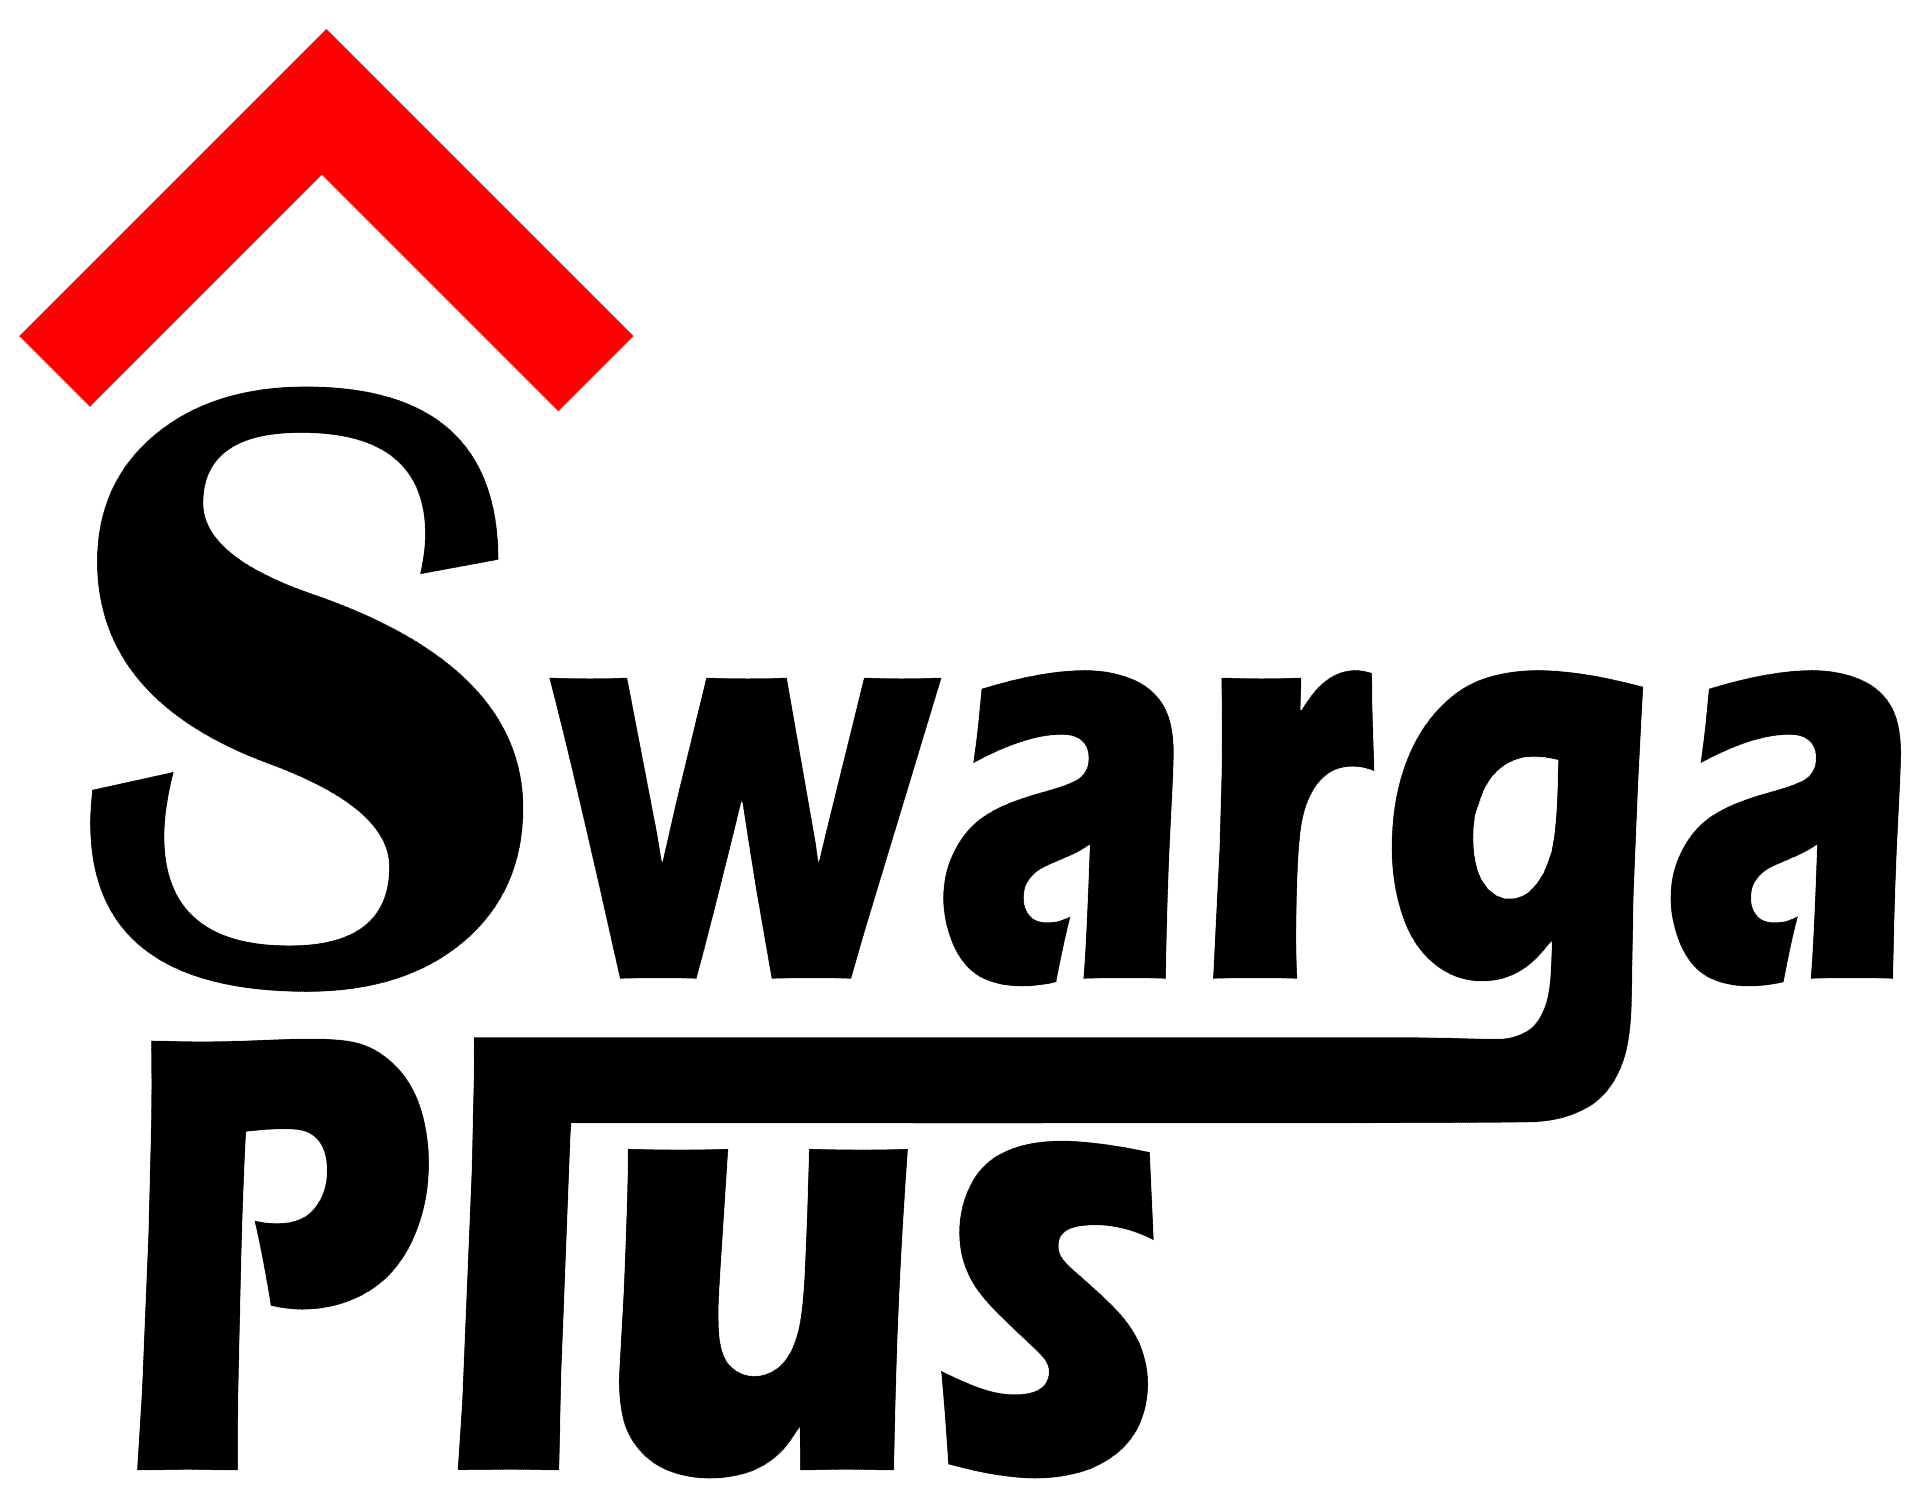 Логотип компании Swarga Plus